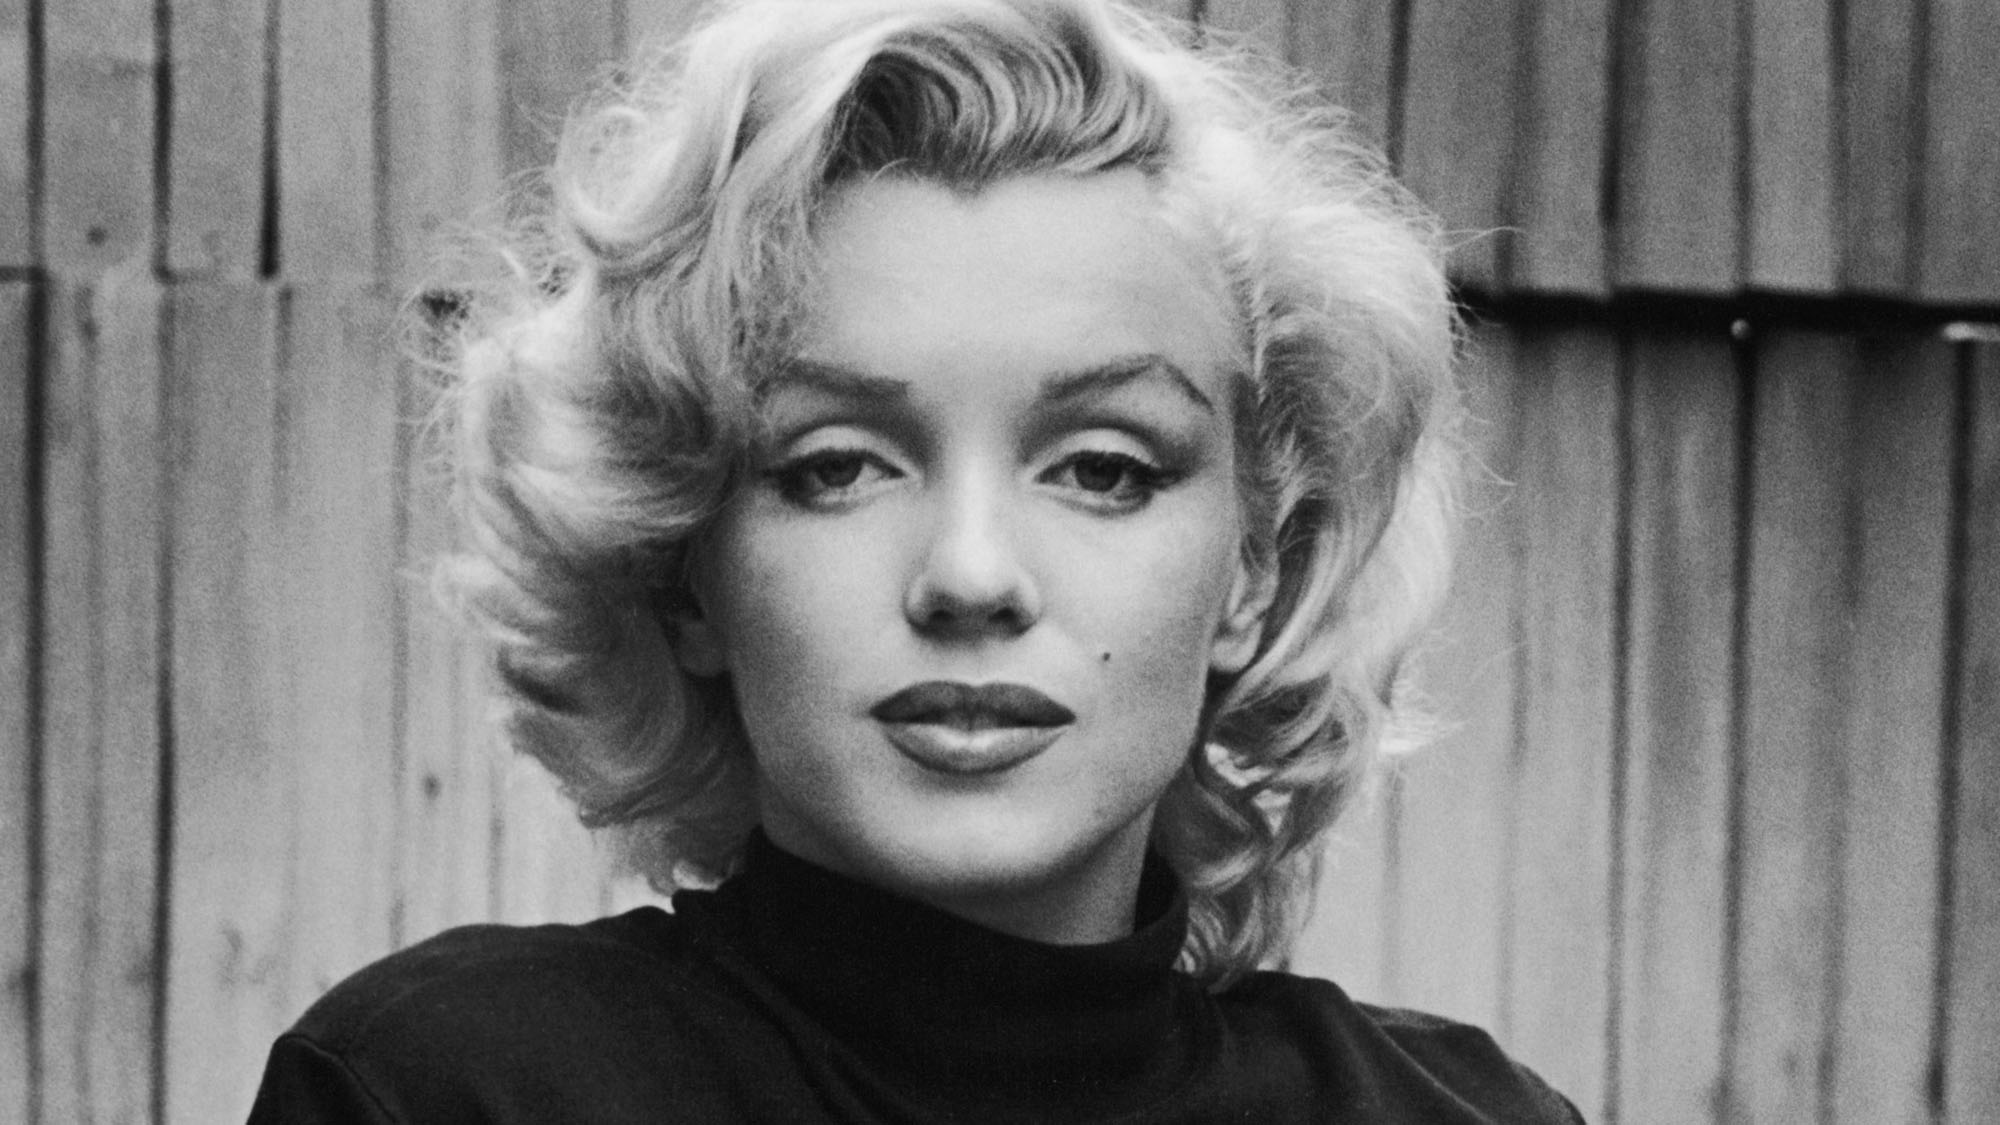 5 mysterious celebrity deaths that are still unexplained